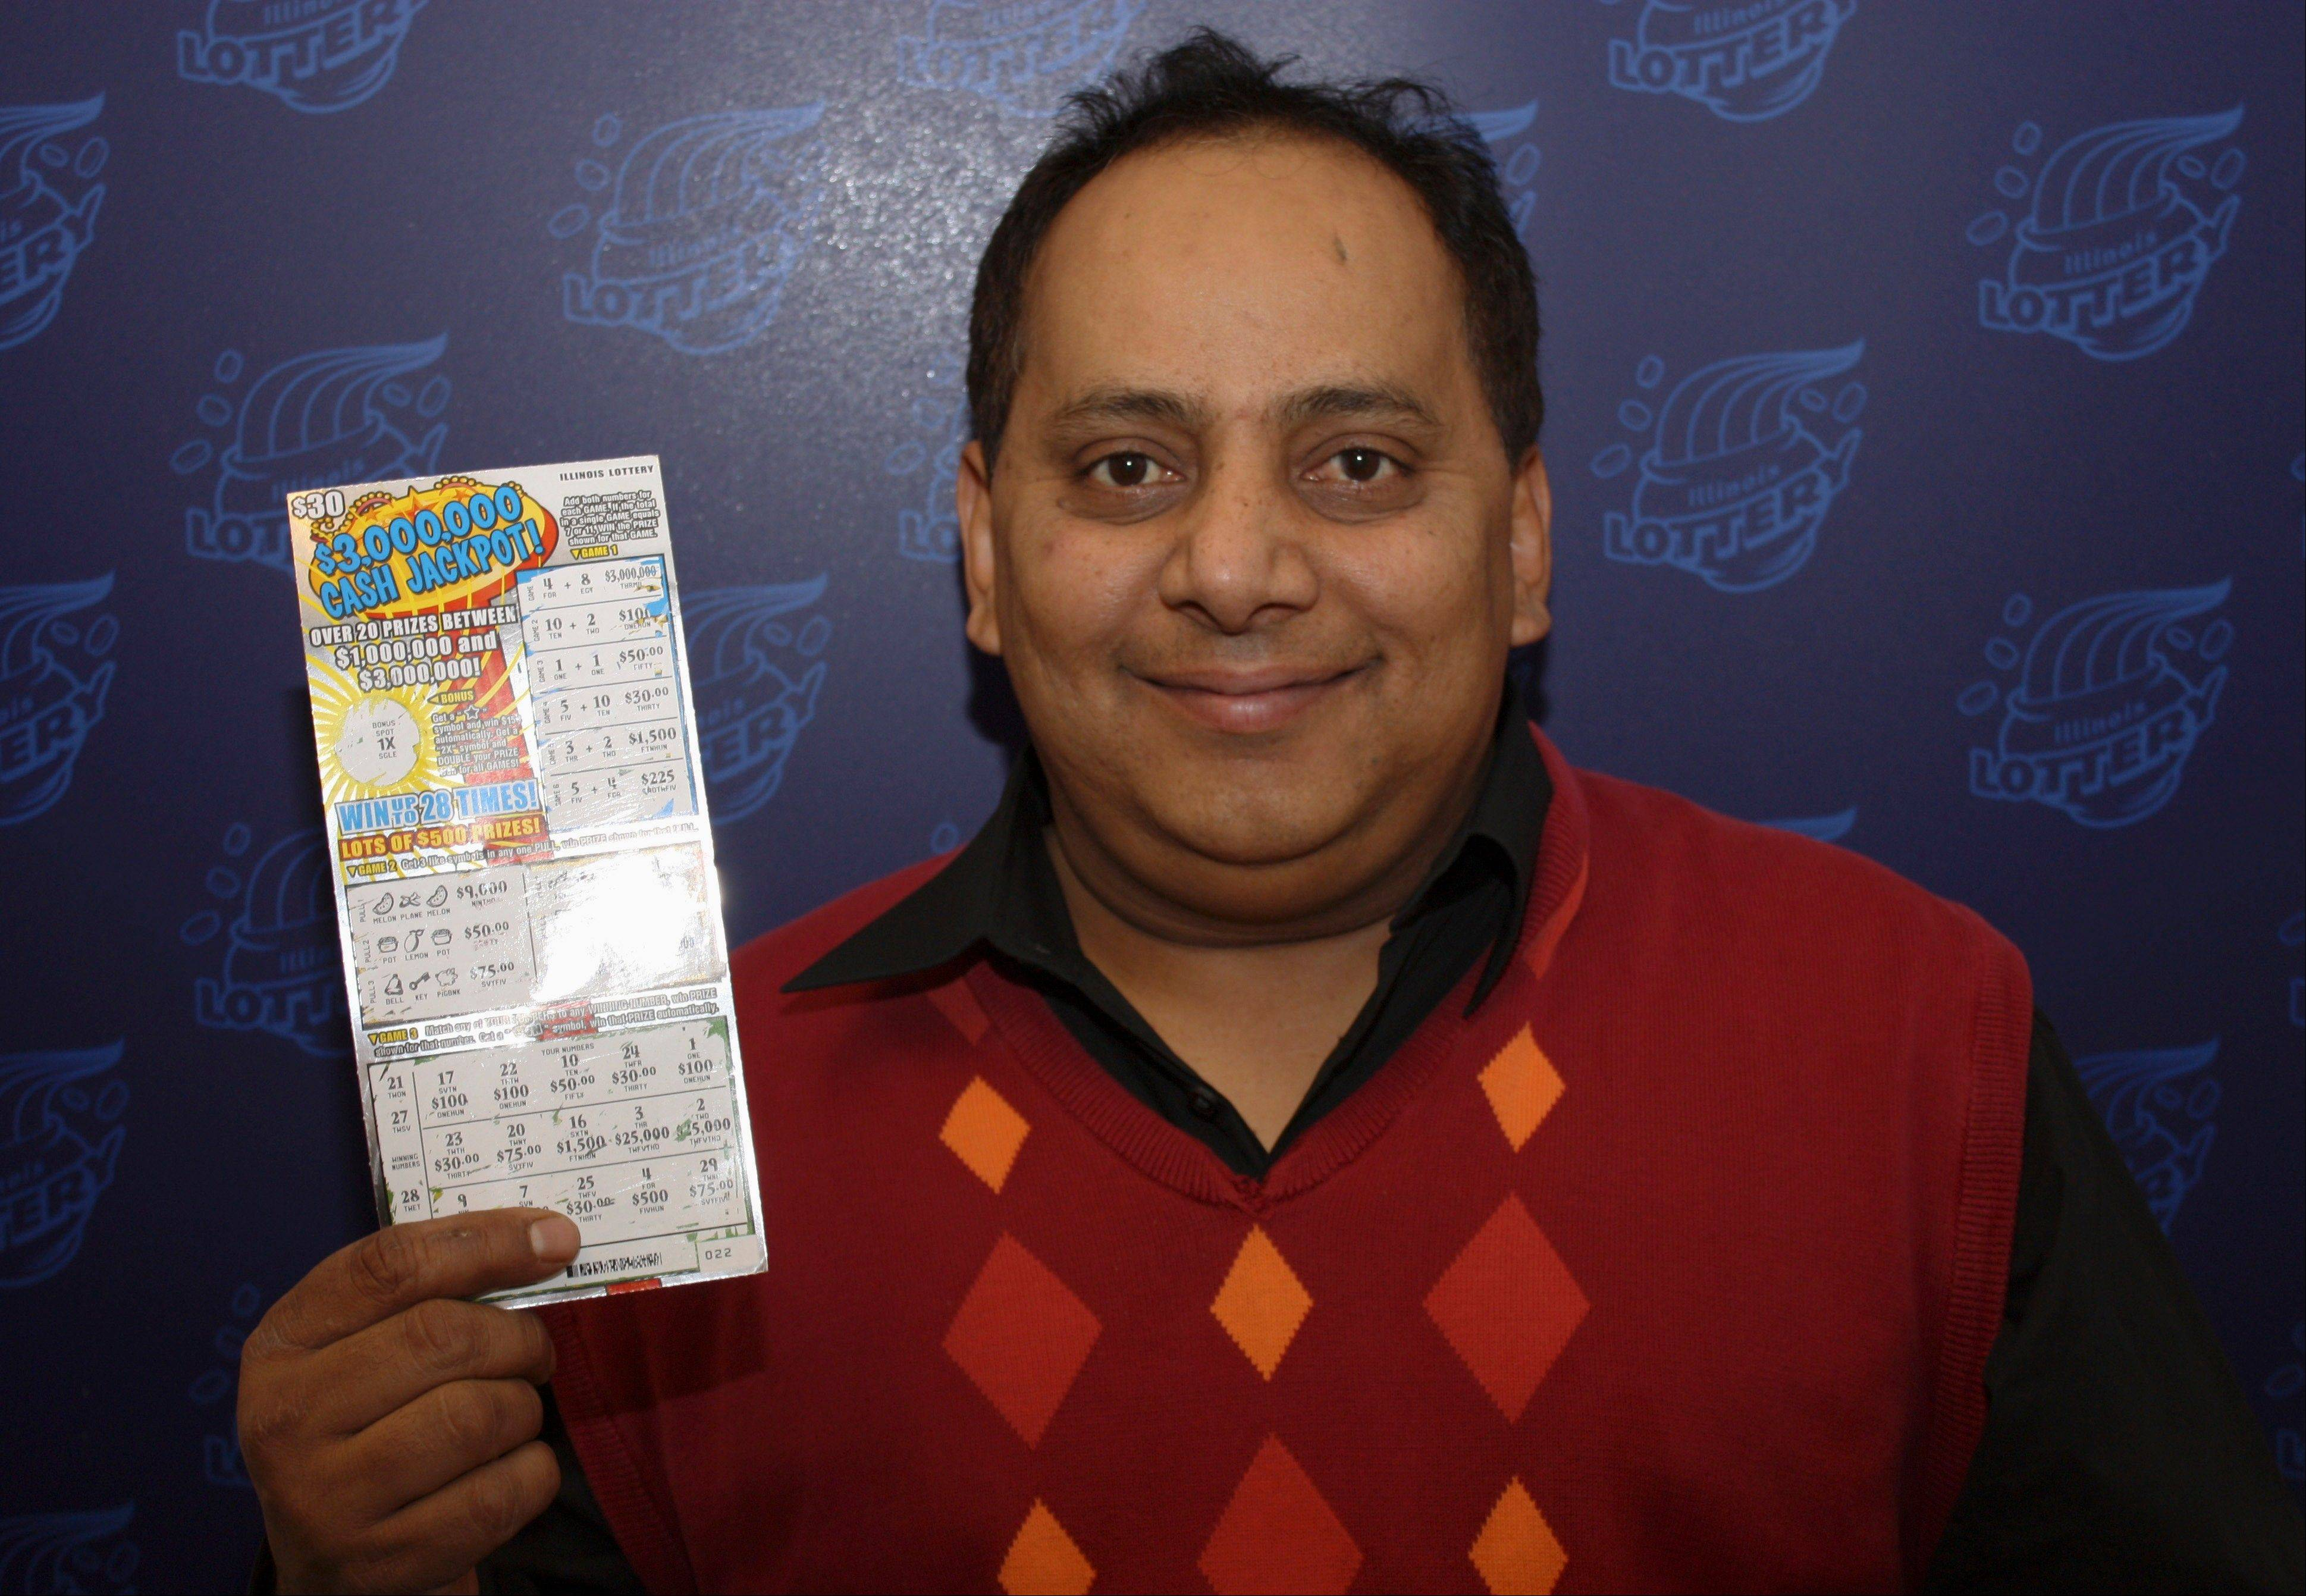 Urooj Khan, 46, was fatally poisoned with cyanide just as he was about to collect his $425,000 lottery payout.